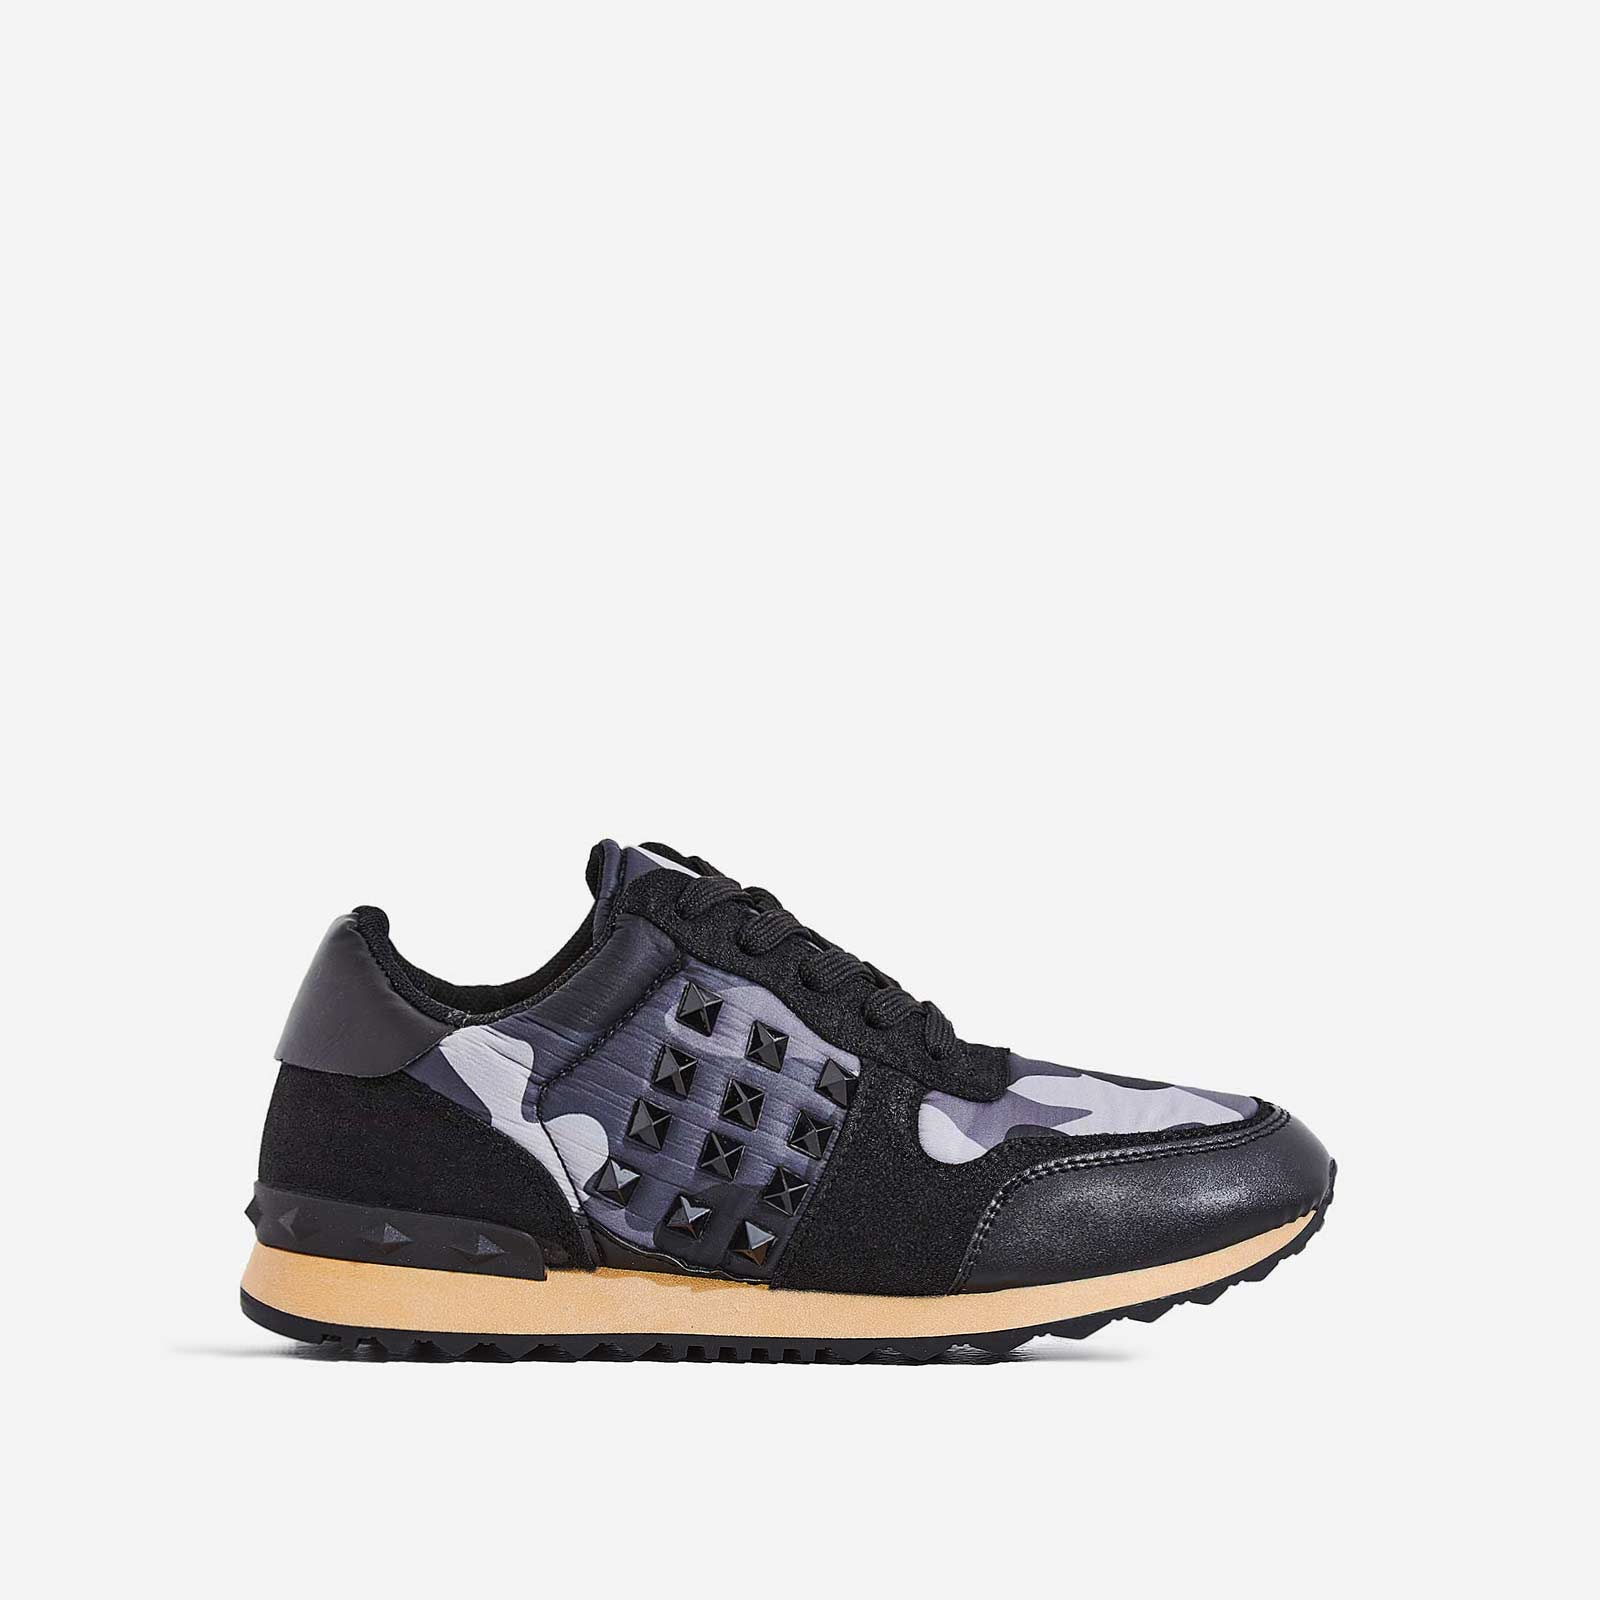 Camillo Studded Detail Trainer In Black Camouflage